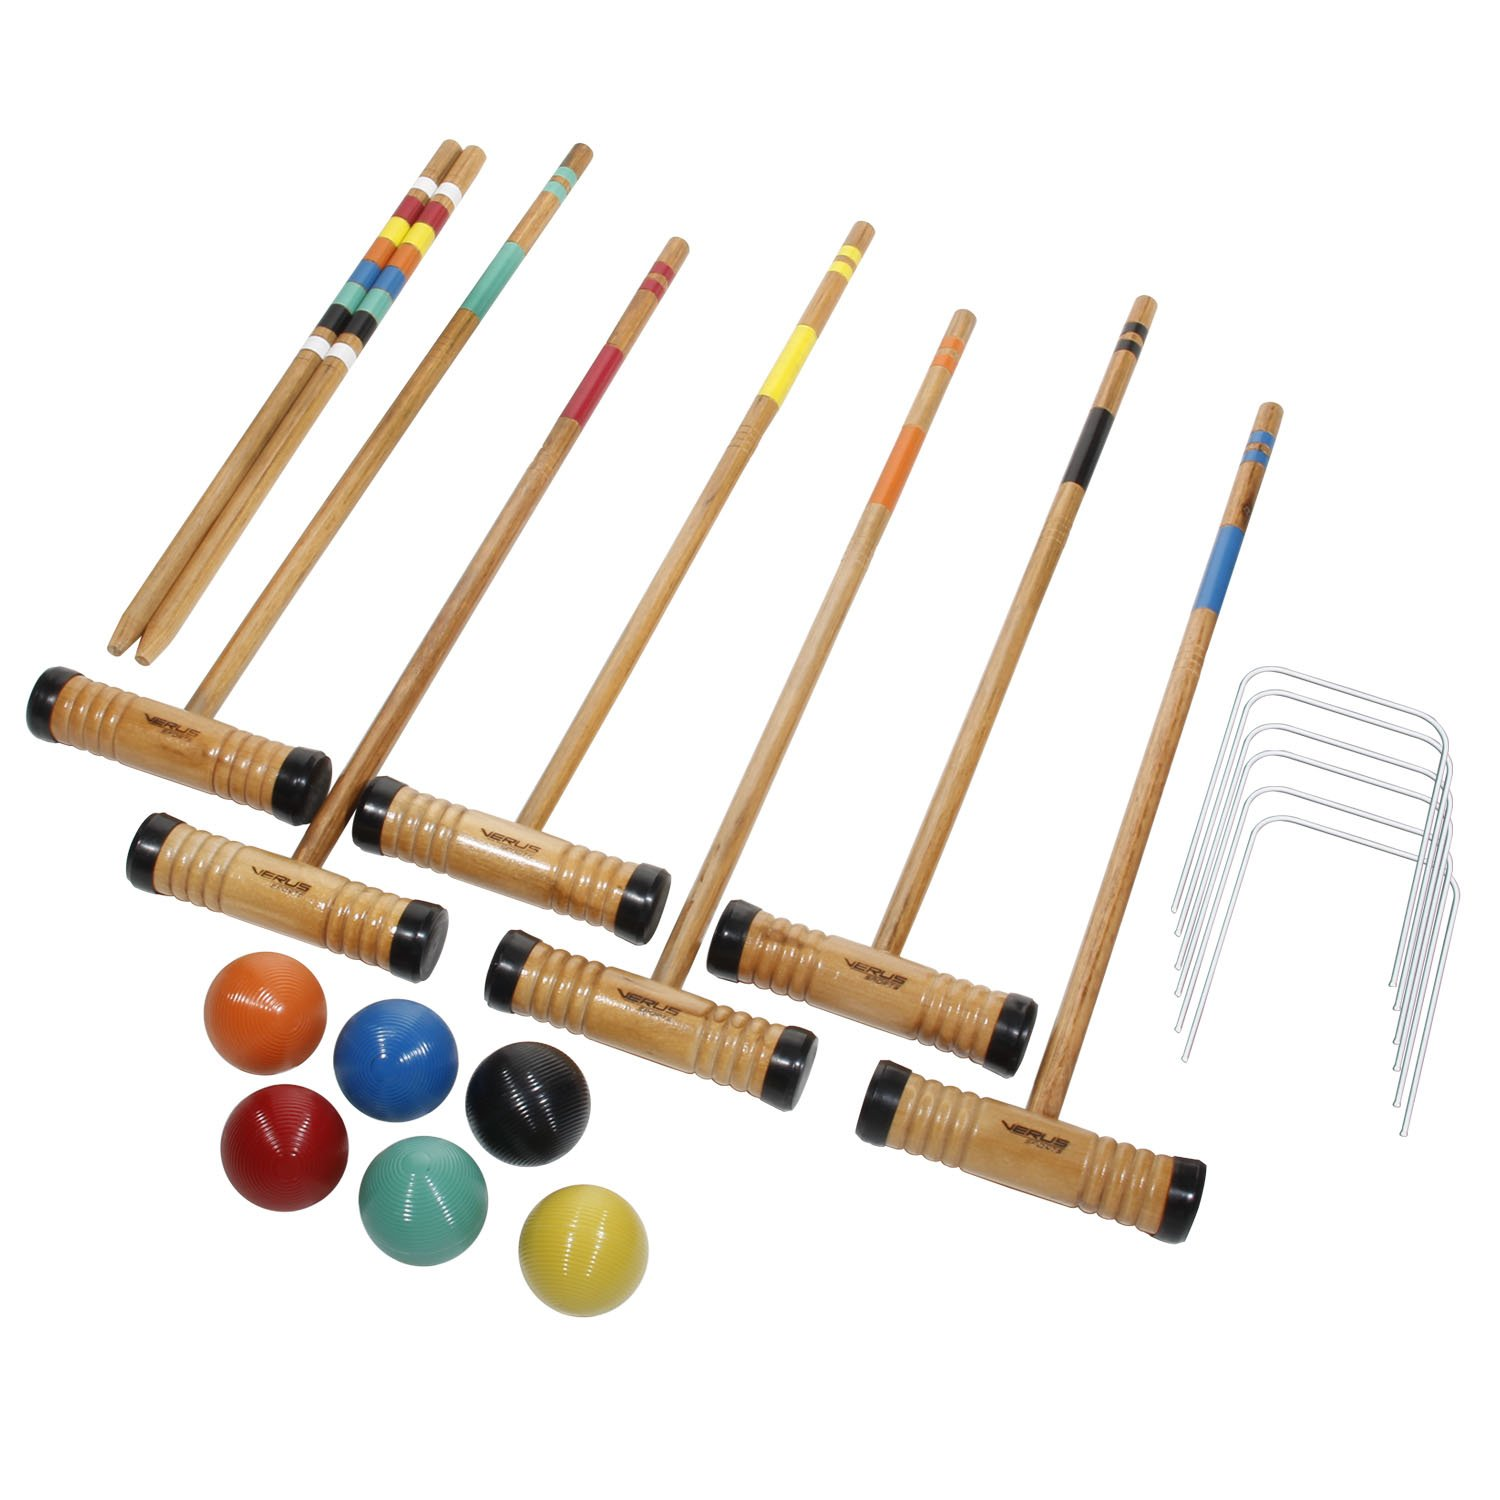 Verus Sports Expert 6-Player Expert Croquet Verus Set Mallet B00CP2AOOS and Carrying Case, 70cm B00CP2AOOS, もっとeガス:41b345fb --- rigg.is